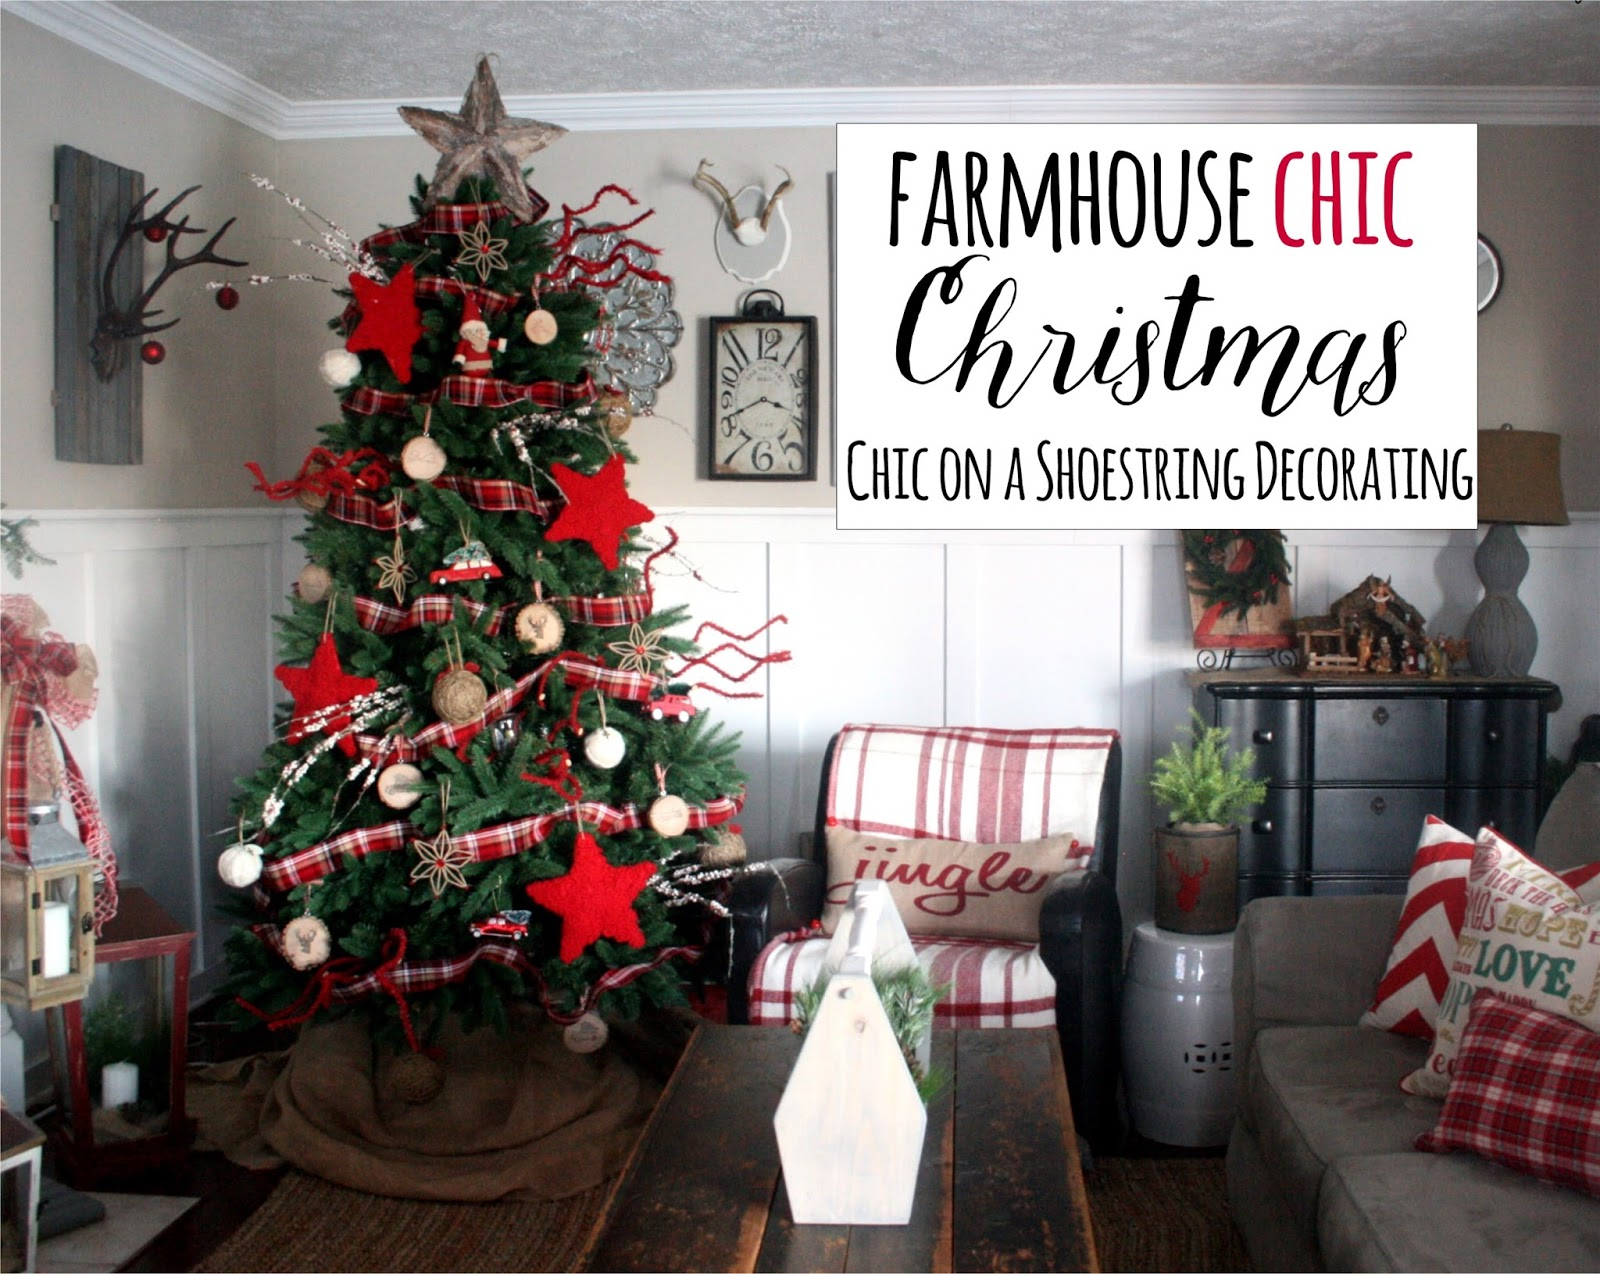 Chic on a Shoestring Decorating  Farmhouse Christmas Decor  Merry     Farmhouse Christmas Decor  Chic on a Shoestring Decorating Blog